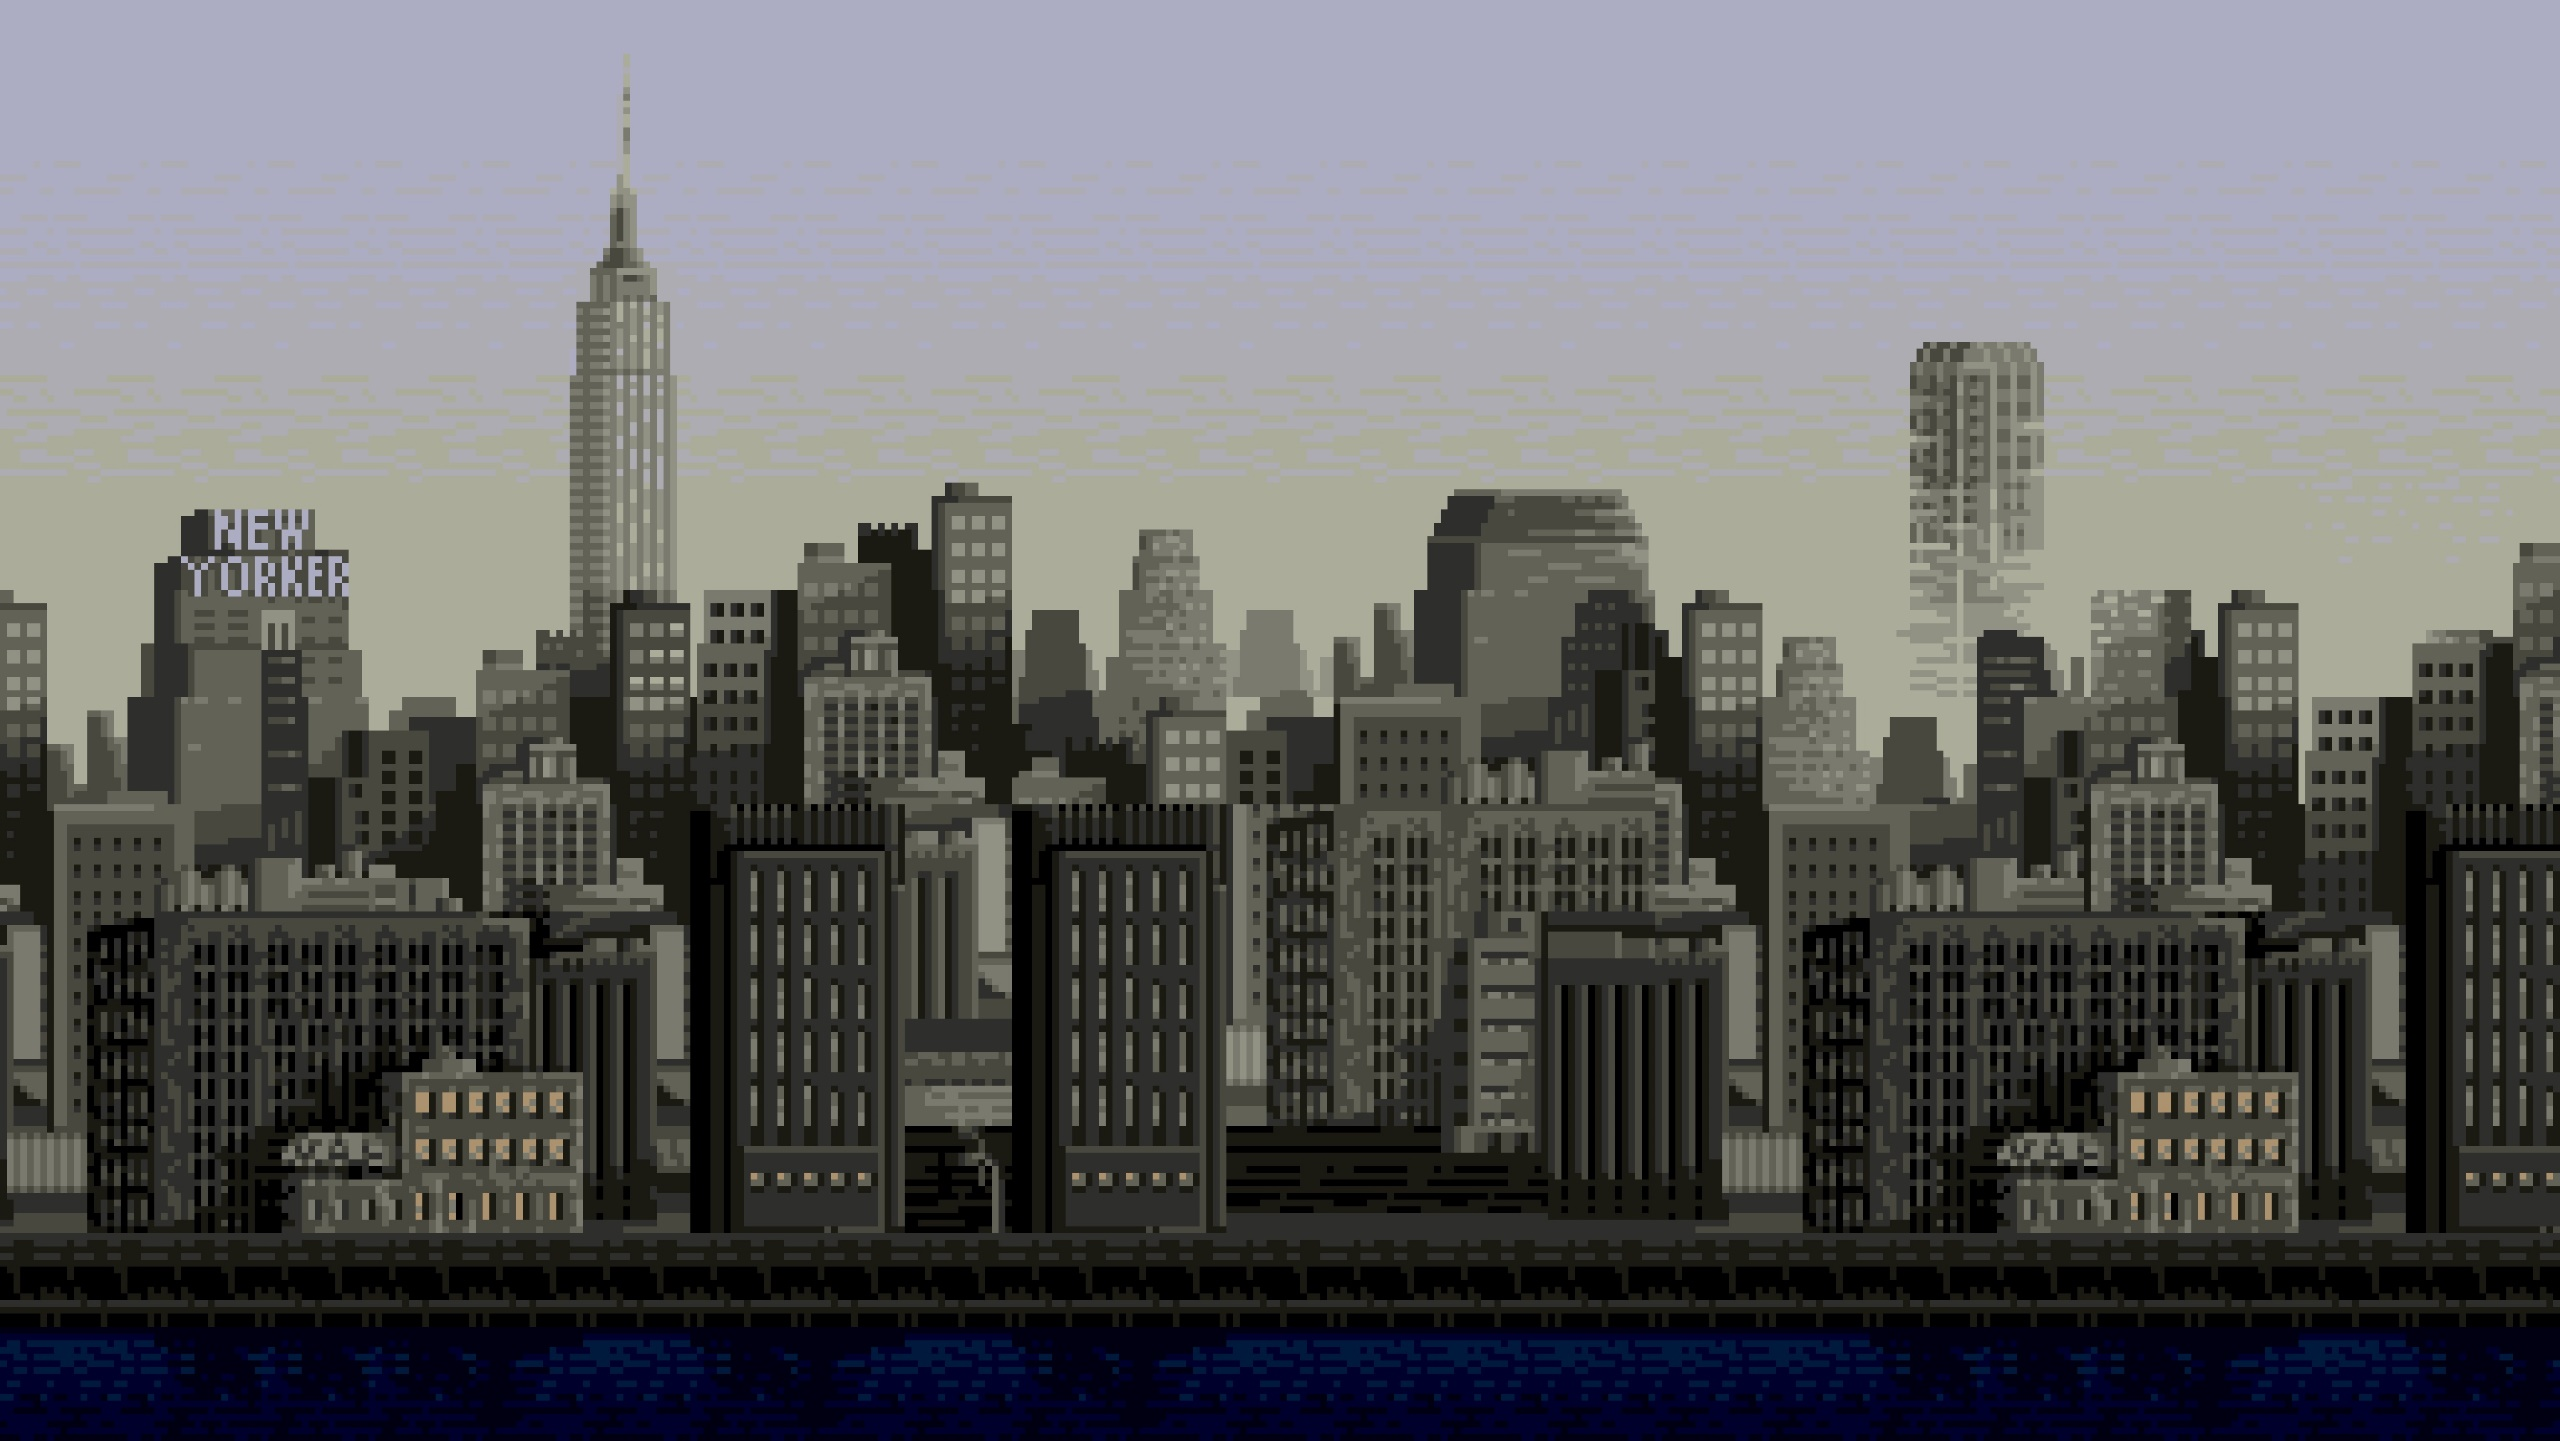 General 2560x1441 cityscape pixels 8-bit New York City pixel art building Empire State Building